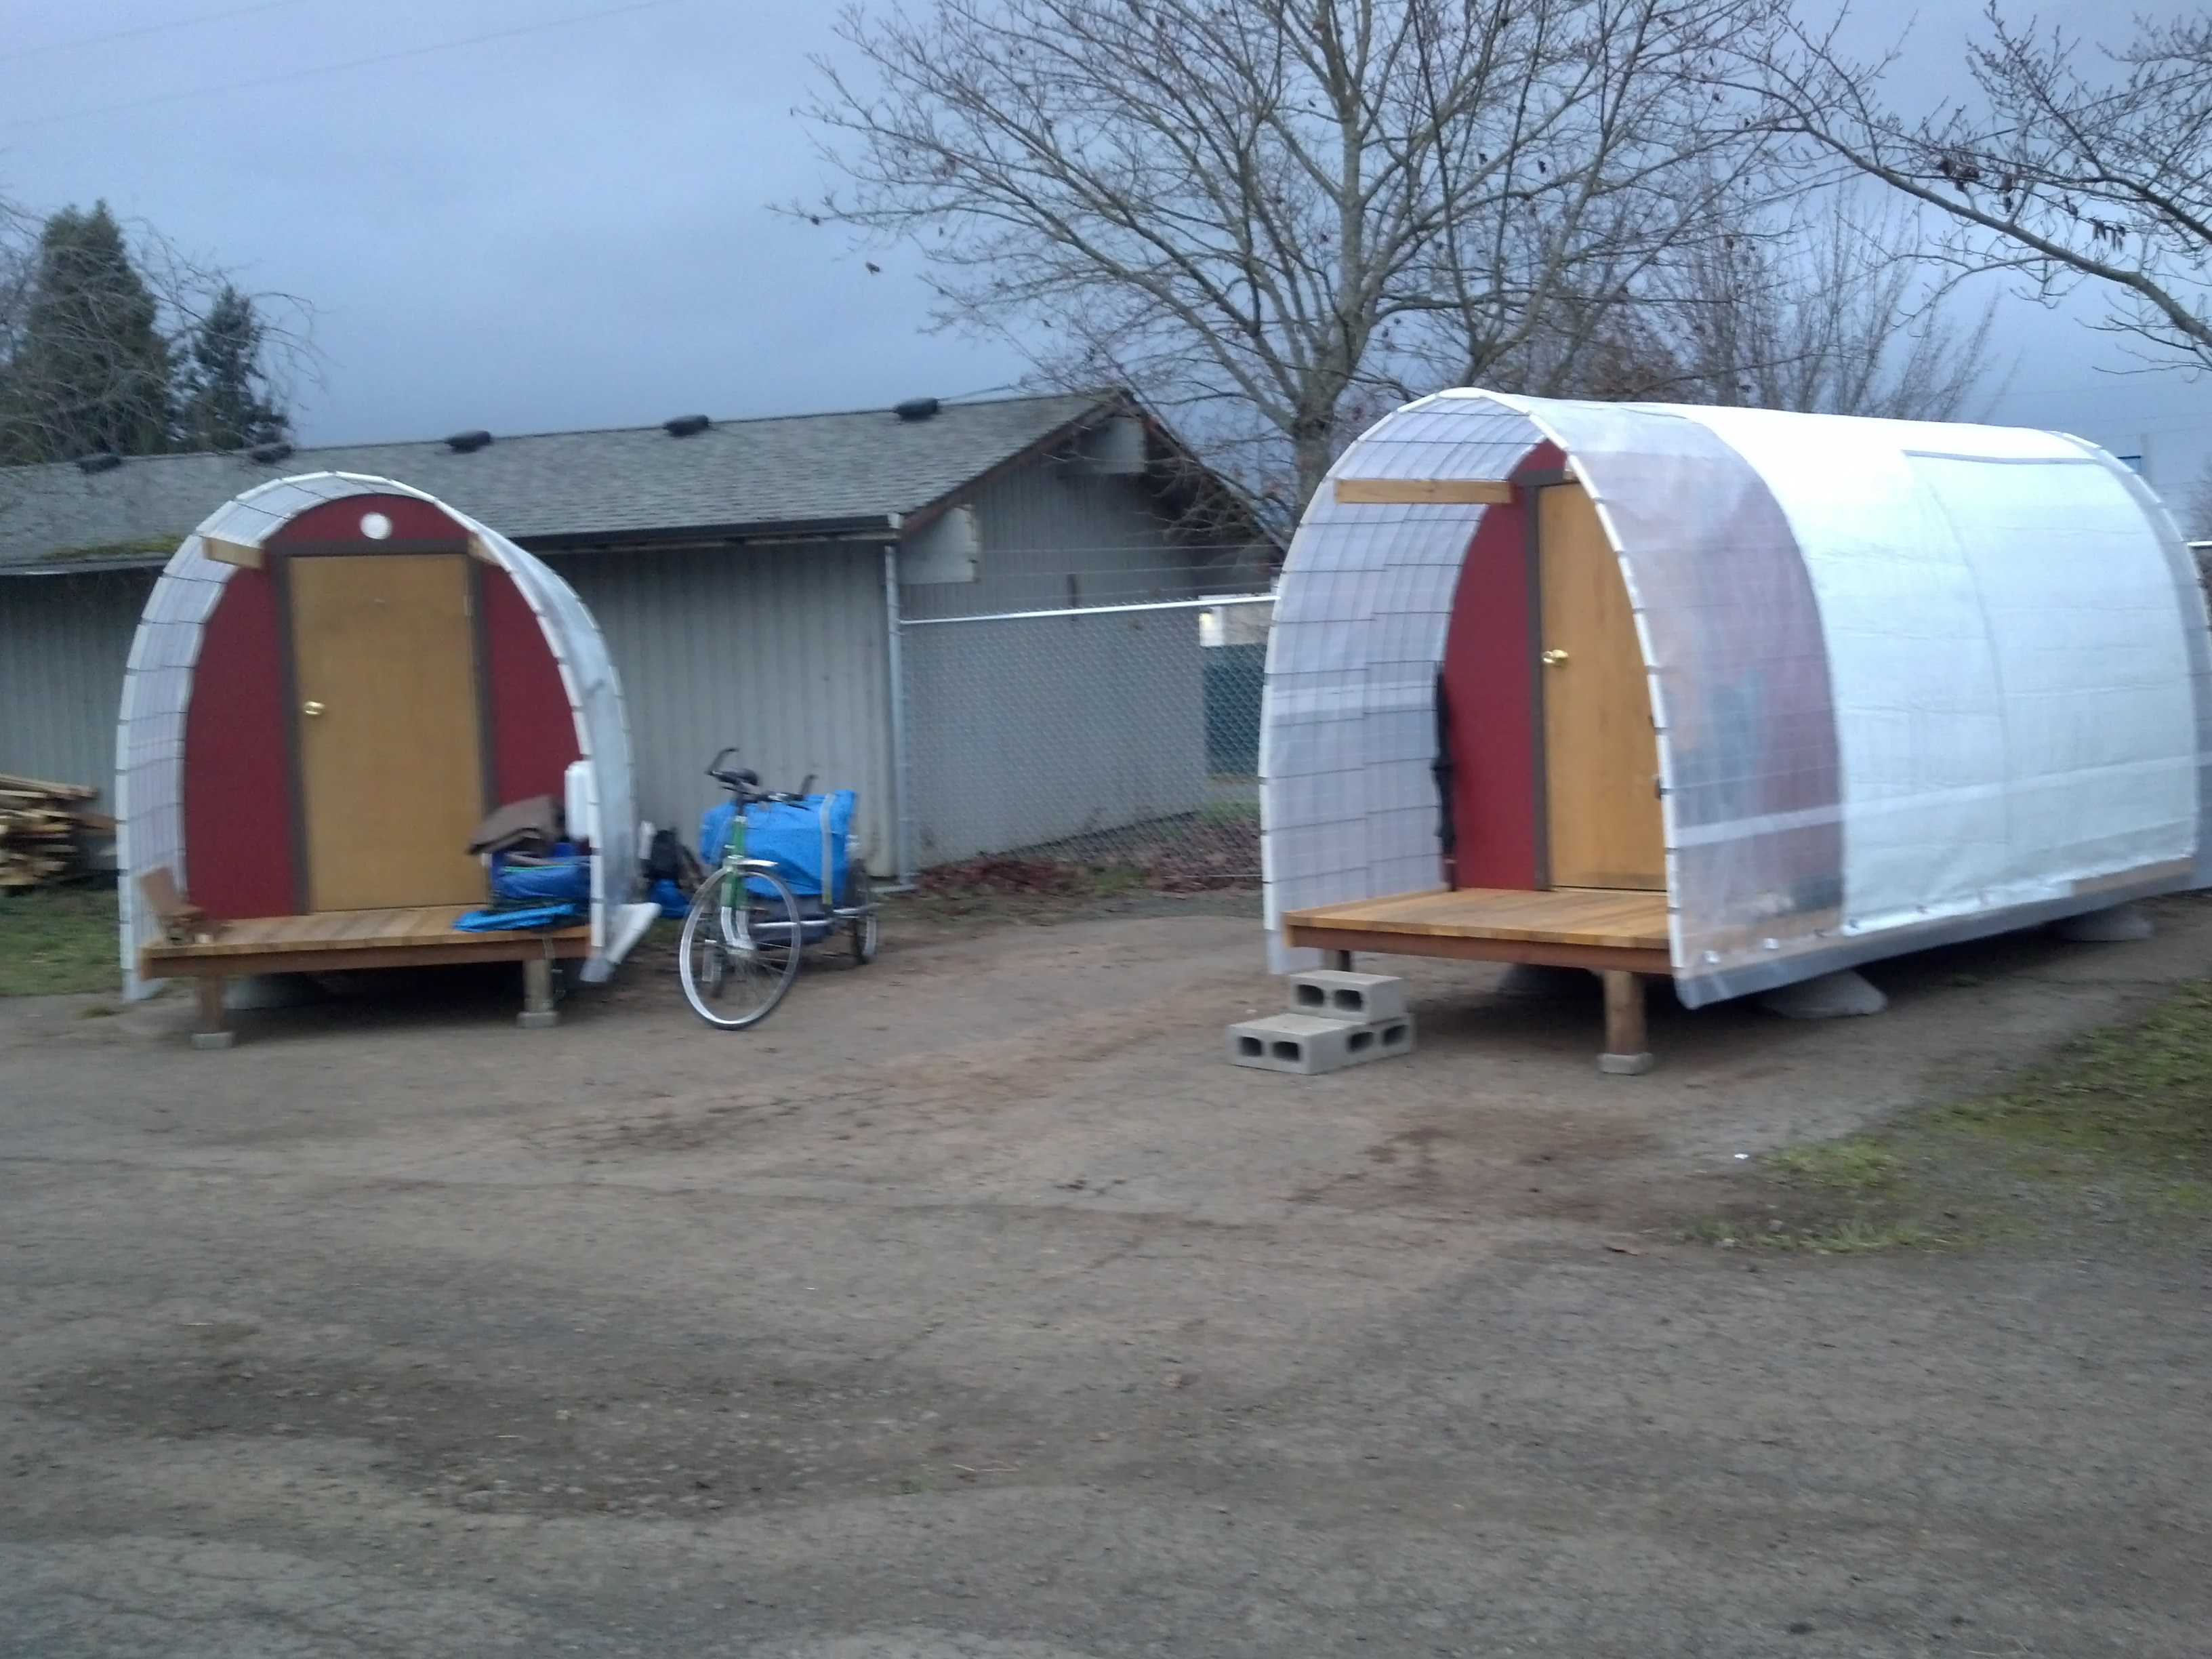 305 best Micro Housing & Shelter For The Homeless images on Pinterest | Shelters, Tiny homes and Homeless shelters